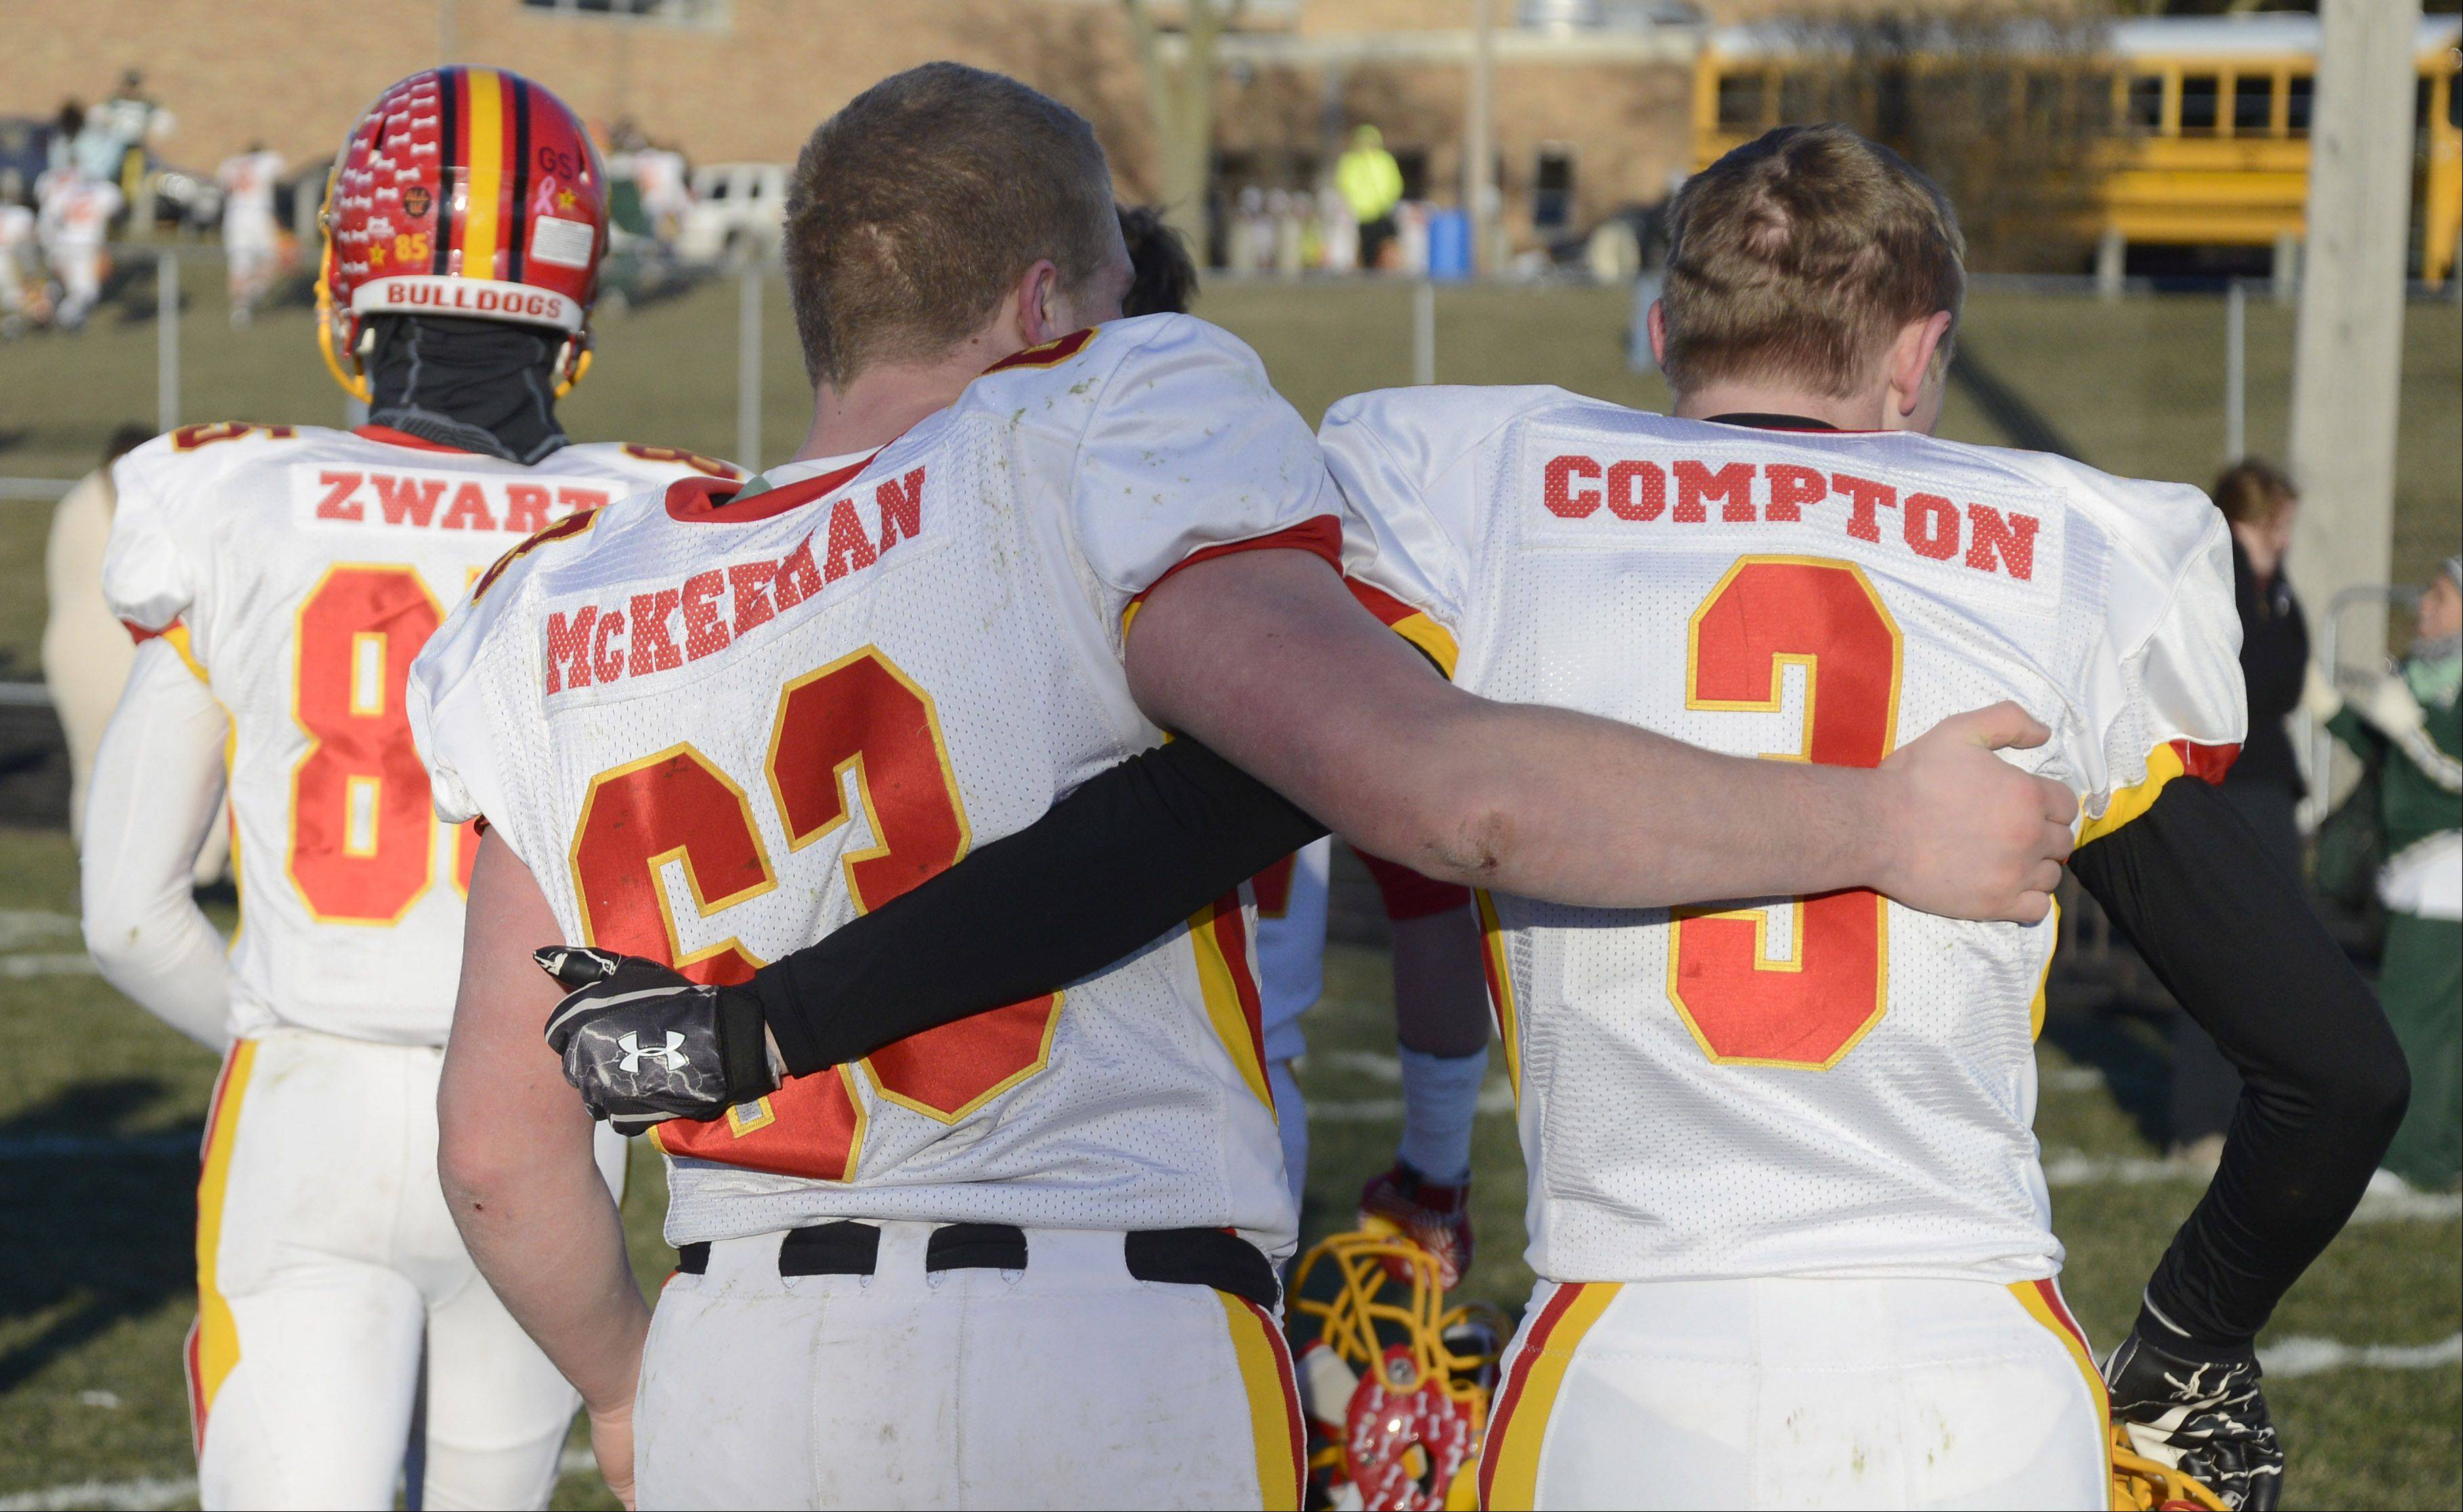 Batavia seniors Connor McKeehan and Ethan Compton walk off the field arm in arm after their Class 6A semifinal win over Rockford Boylan on Saturday, November 23.